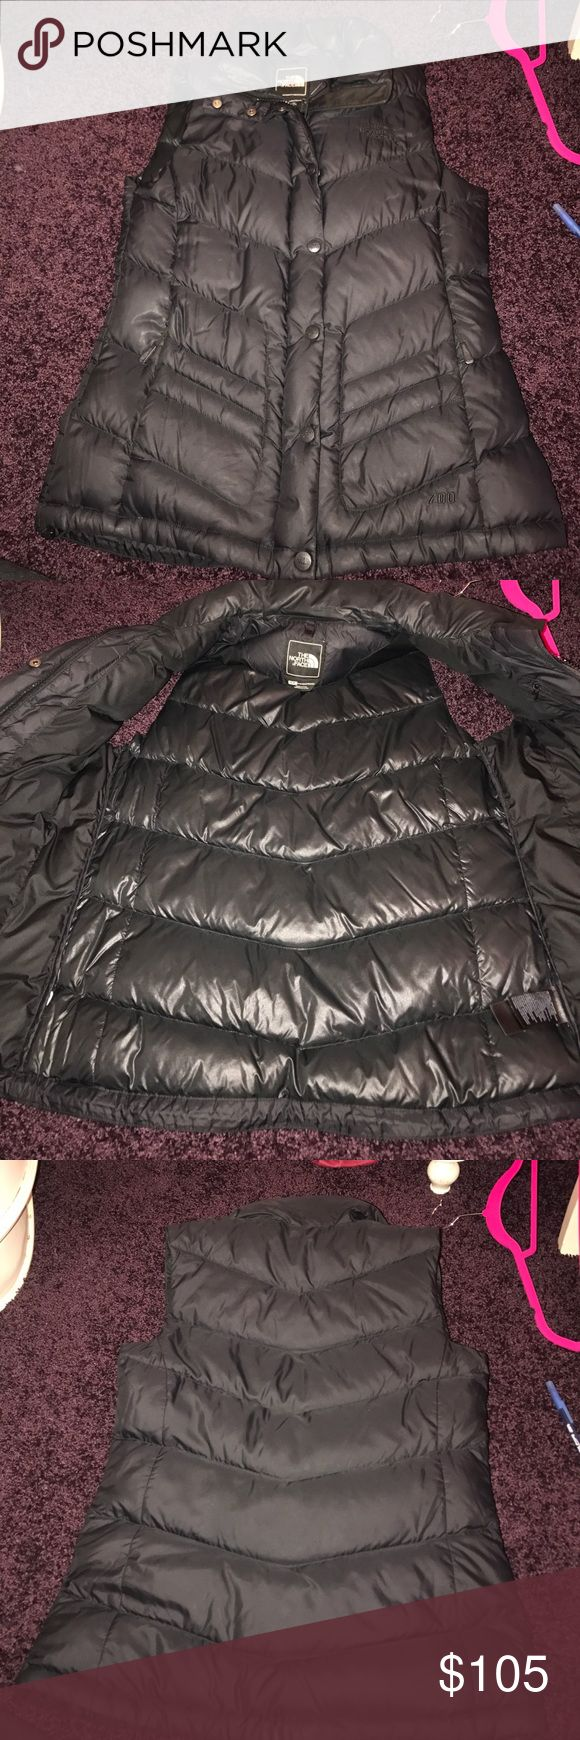 Women's north face vest Women's black north face vest with black north face symbol. Great condition! The North Face Jackets & Coats Vests